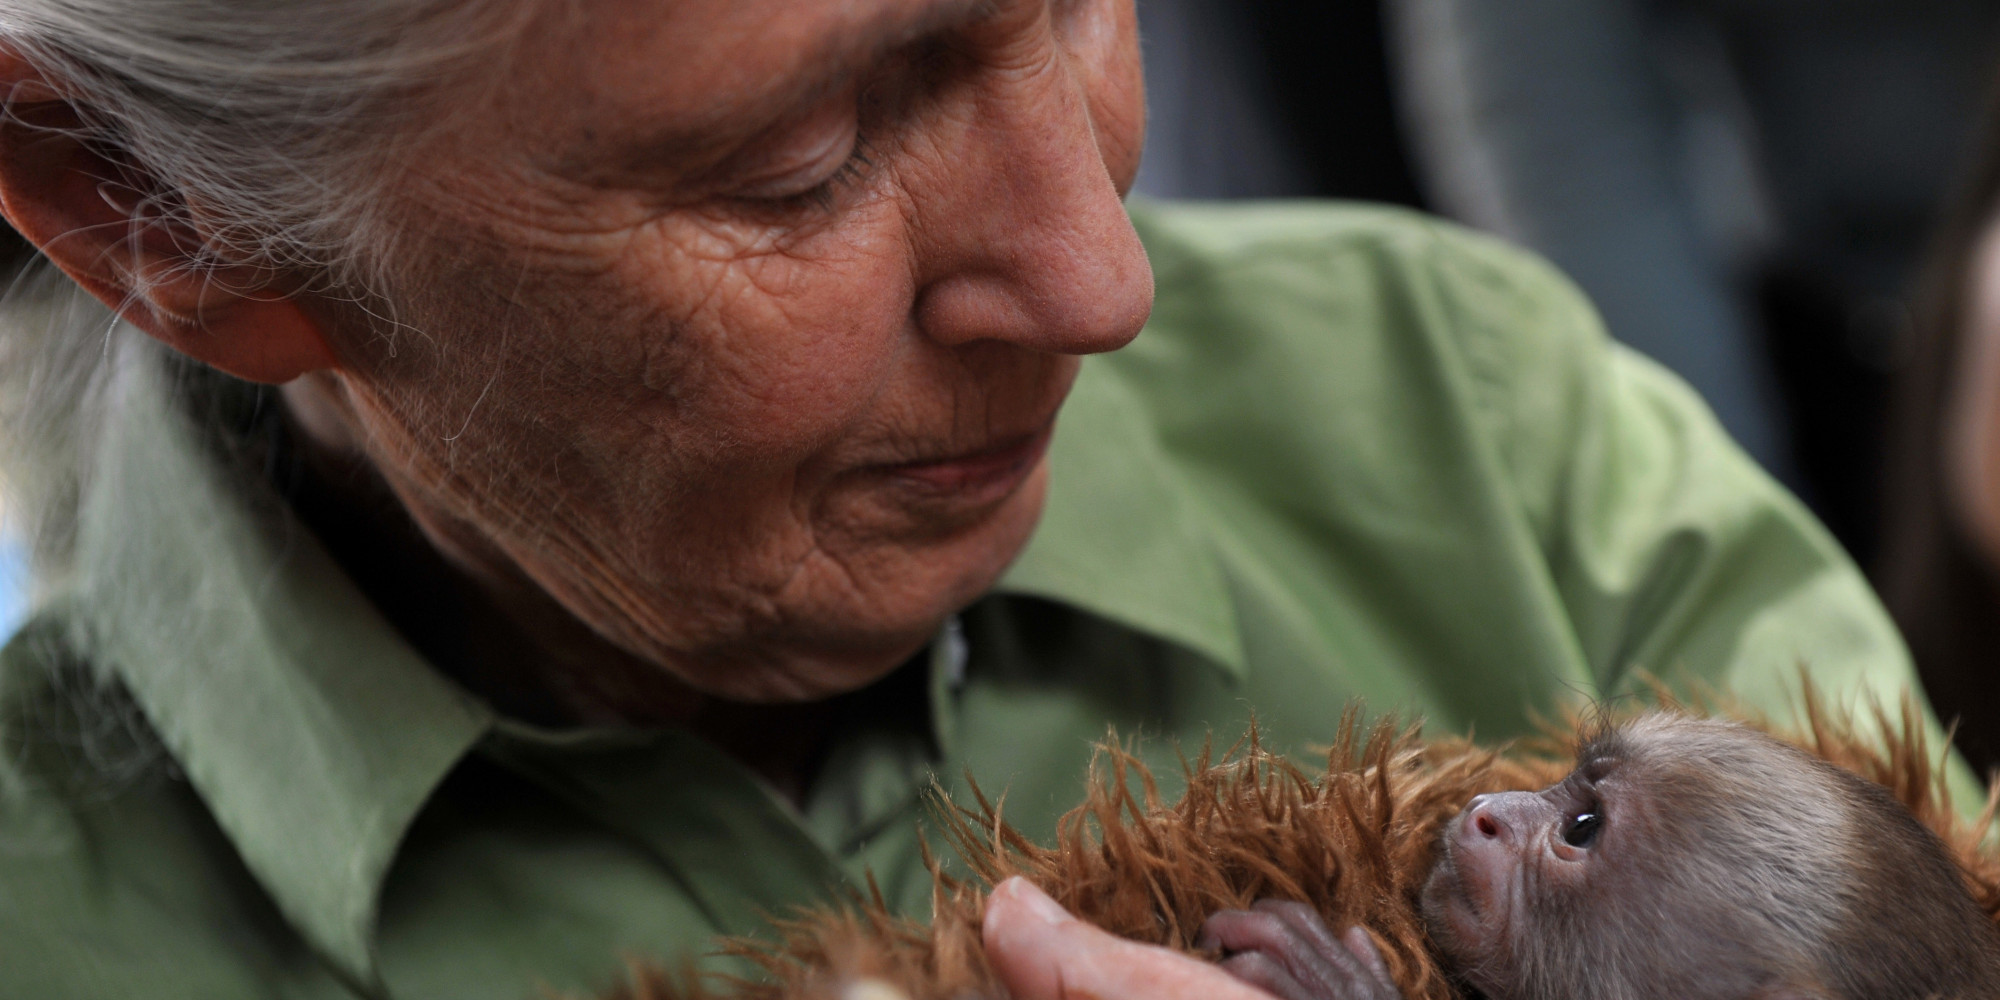 10 Inspiring New Year's Resolutions From My Conversations With Jane Goodall   Kristi York Wooten